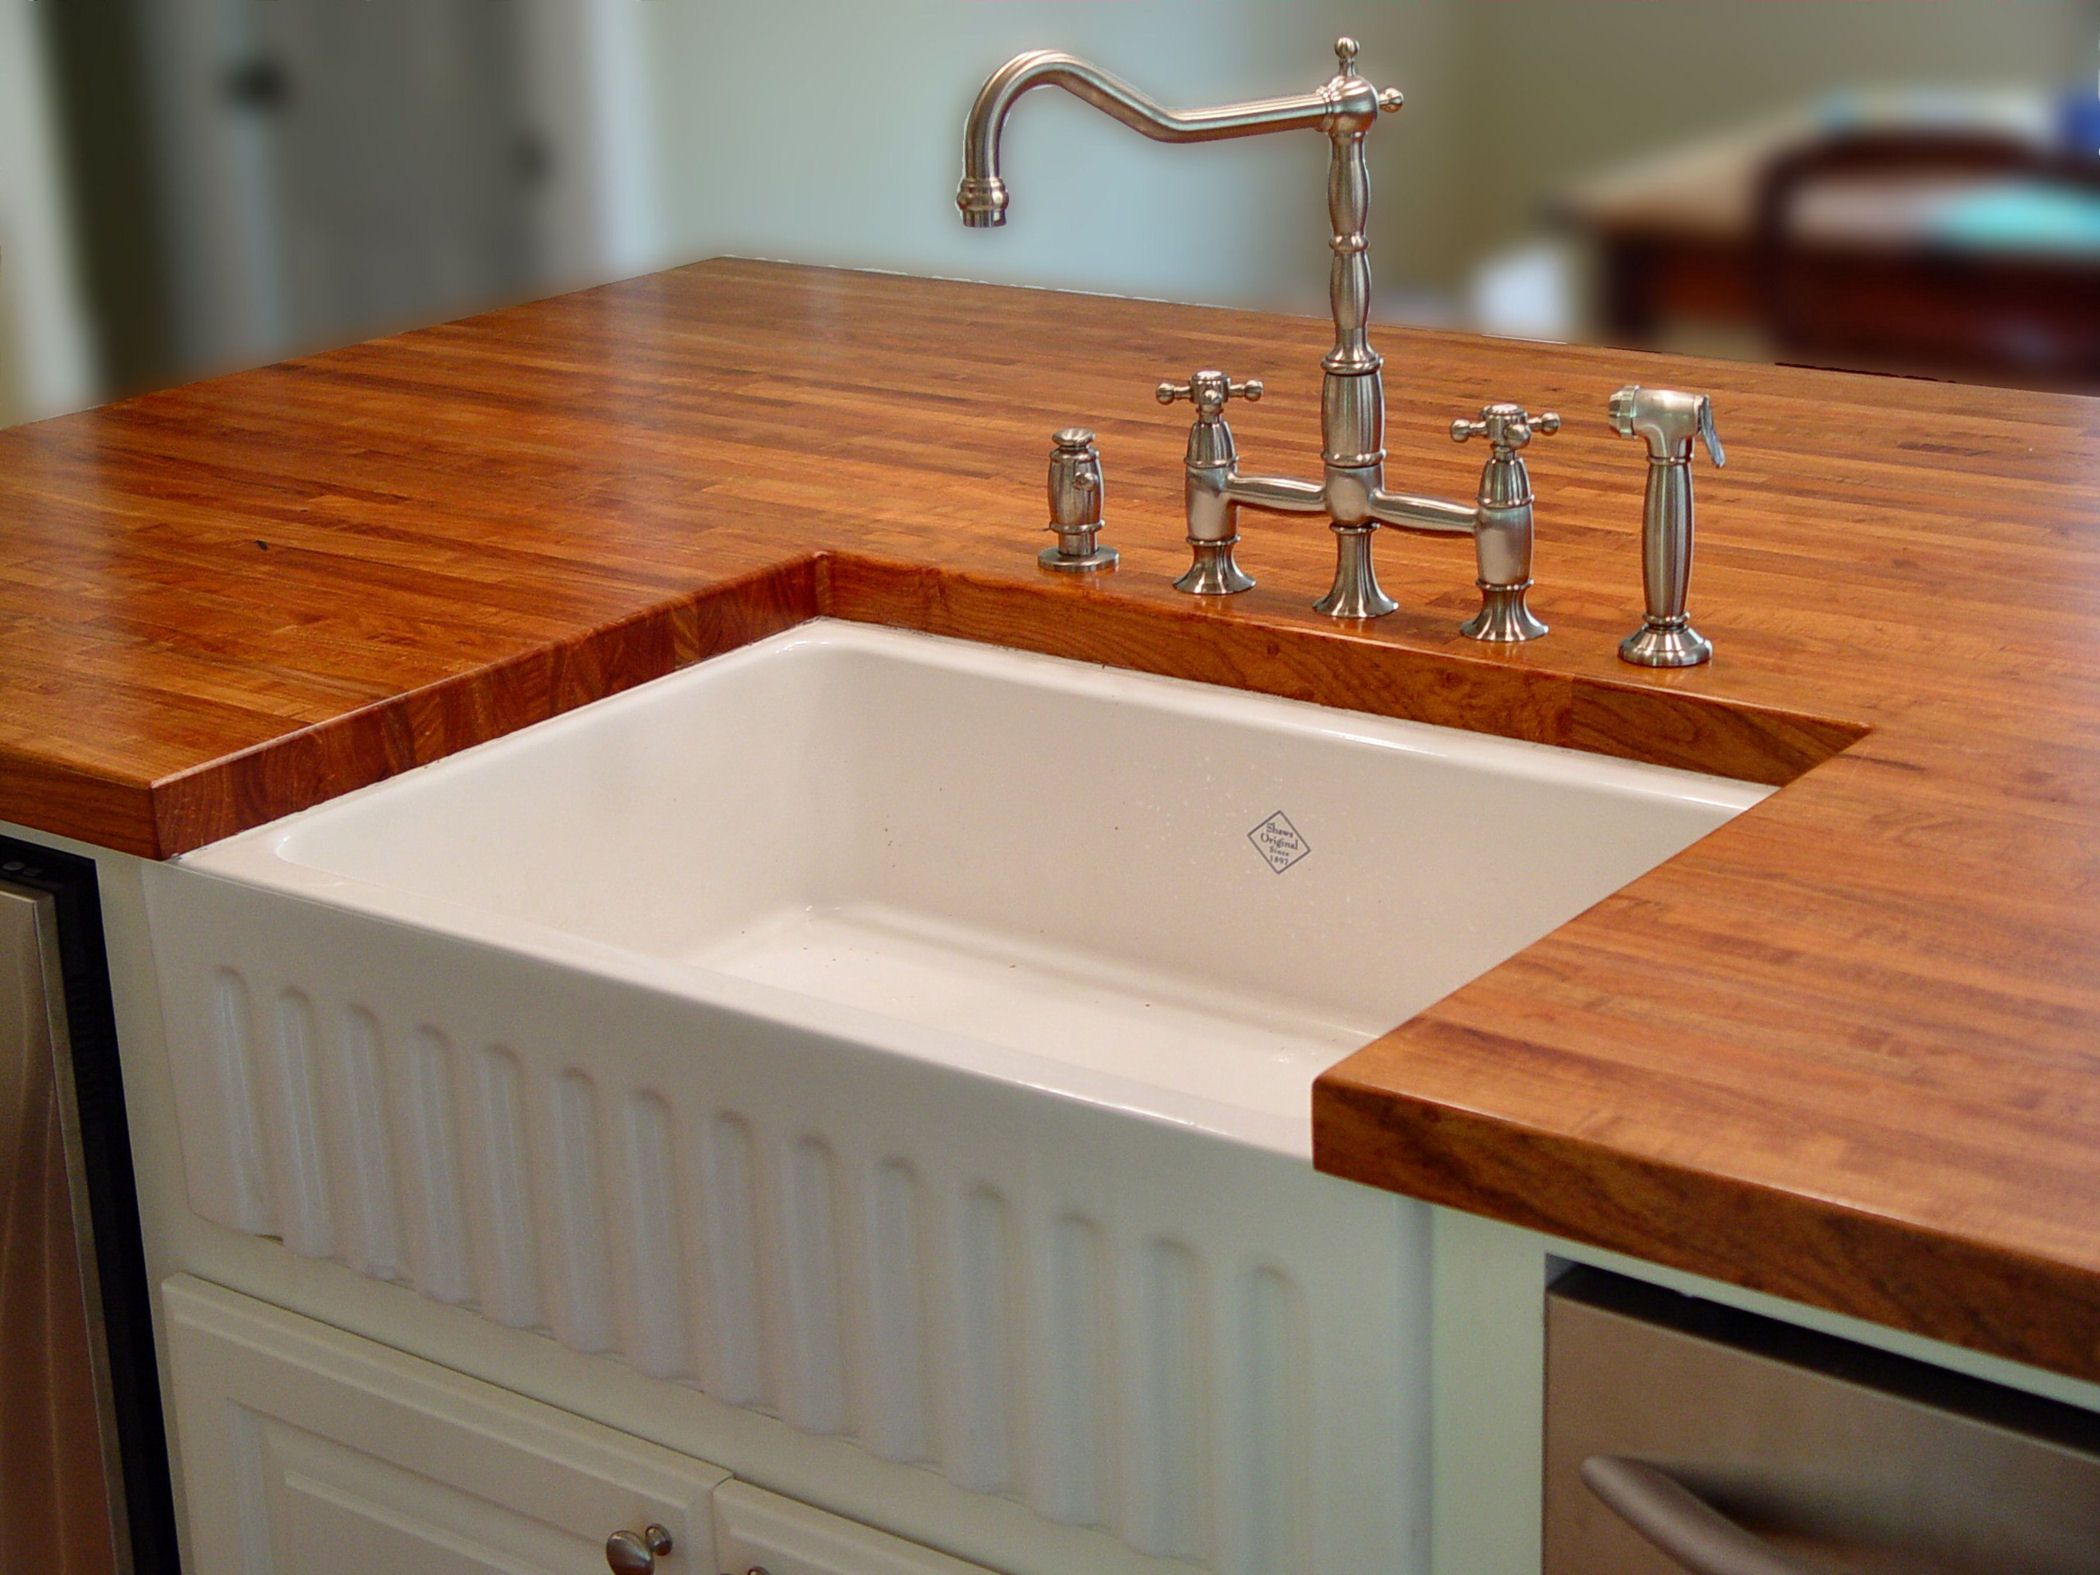 Elegant Edge Grain Mesquite Island Top With Farm Sink And Waterlox Finish